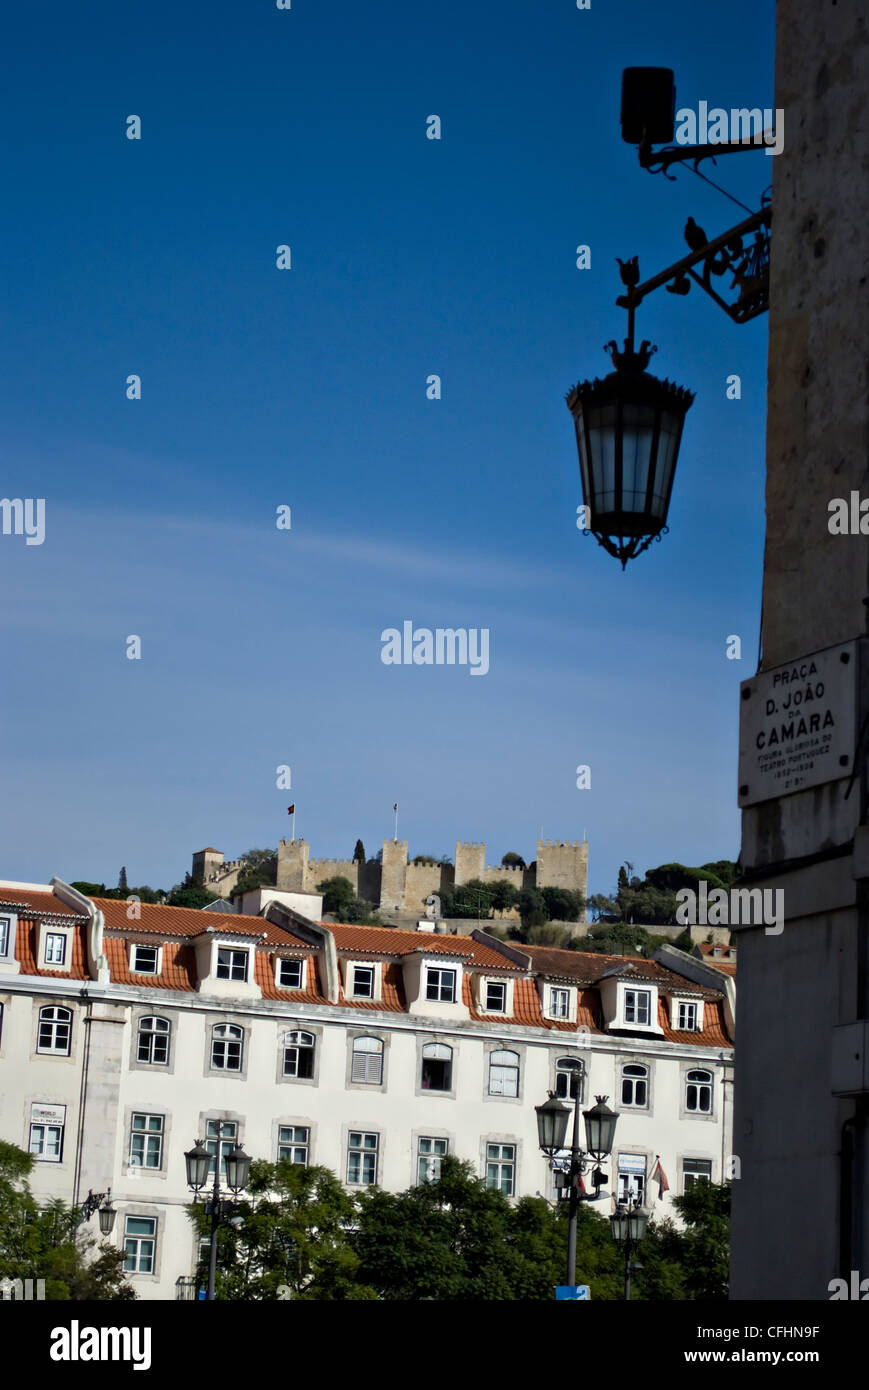 View of Saint George Castle, Castelo Sao Jorge, taken in the Rossio district, central Lisbon, Portugal, Europe - Stock Image